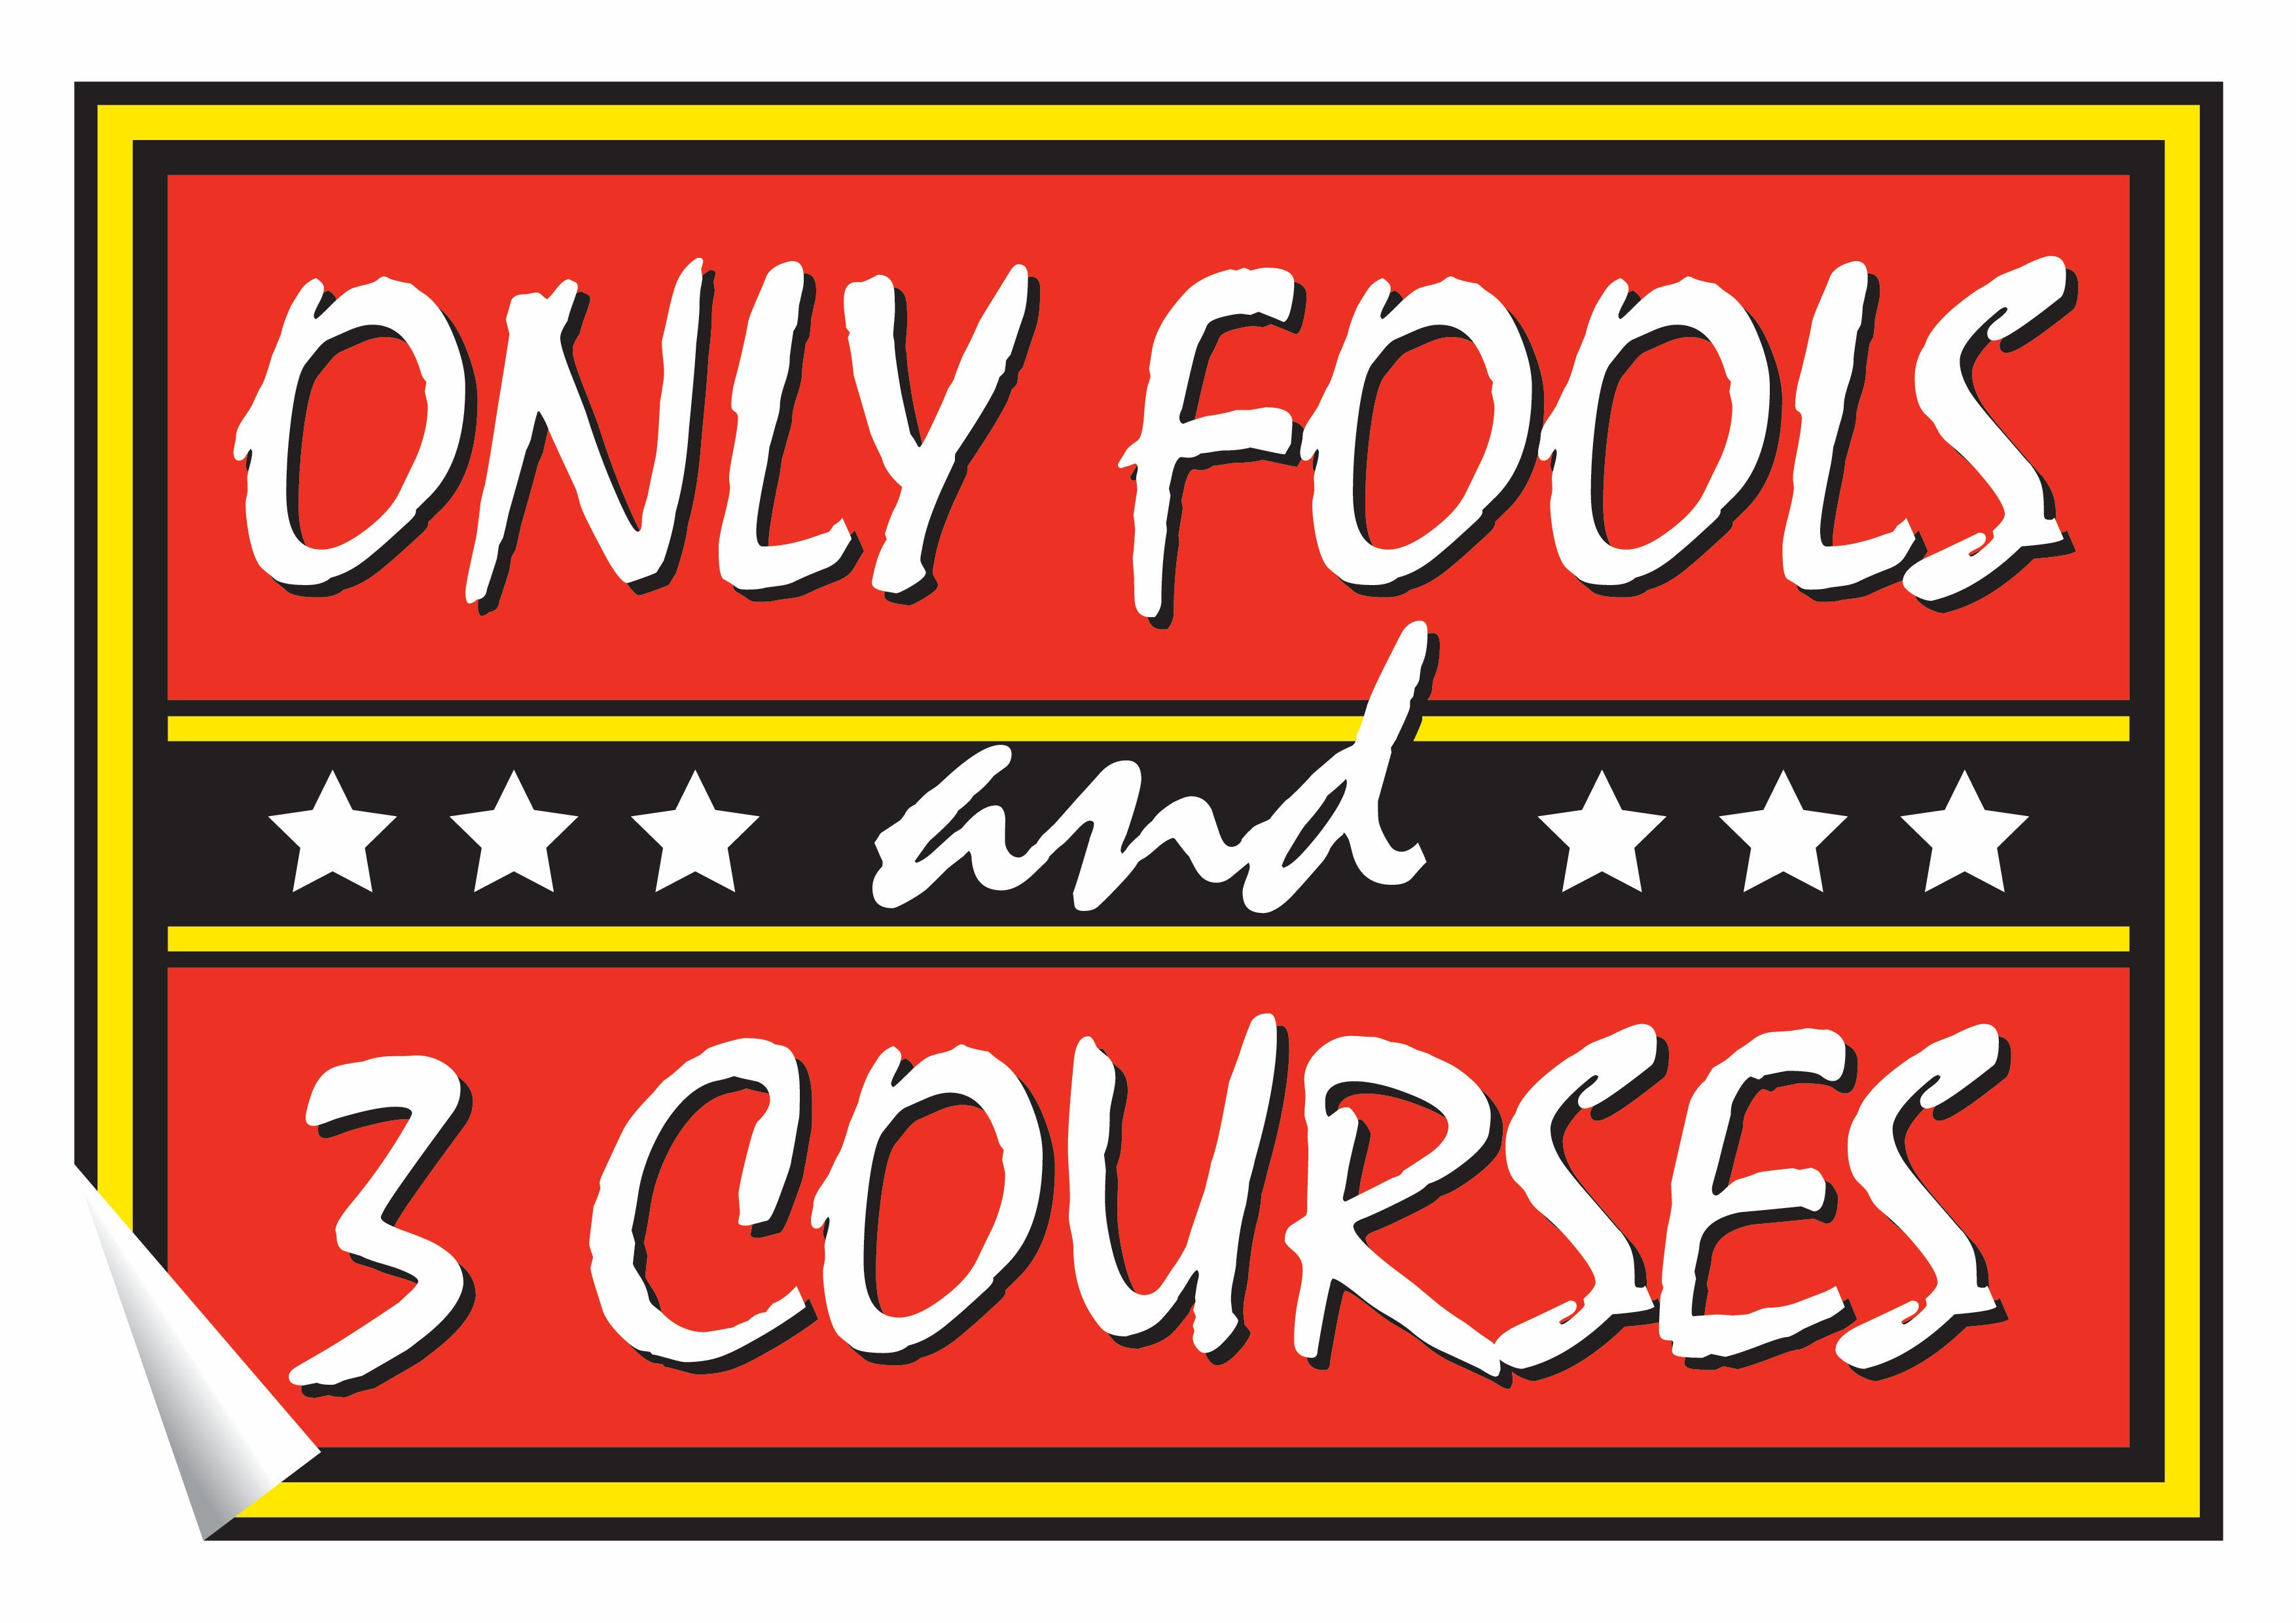 Only Fools & 3 Courses Dining Event